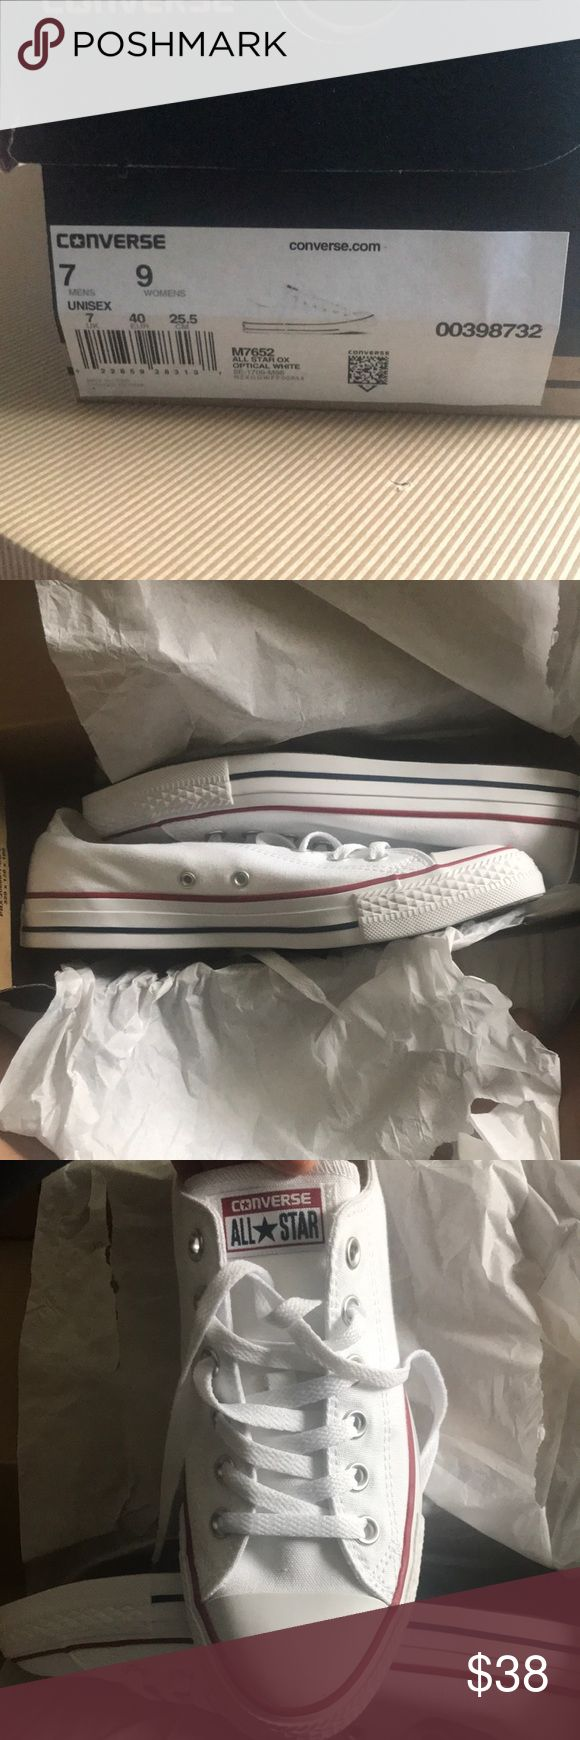 White converse 4 SALE !!!! all white converse. NEVER WORN!!!!  size 7 in men's and 9 in women's (Unisex). Comes with the box. Converse Shoes Sneakers